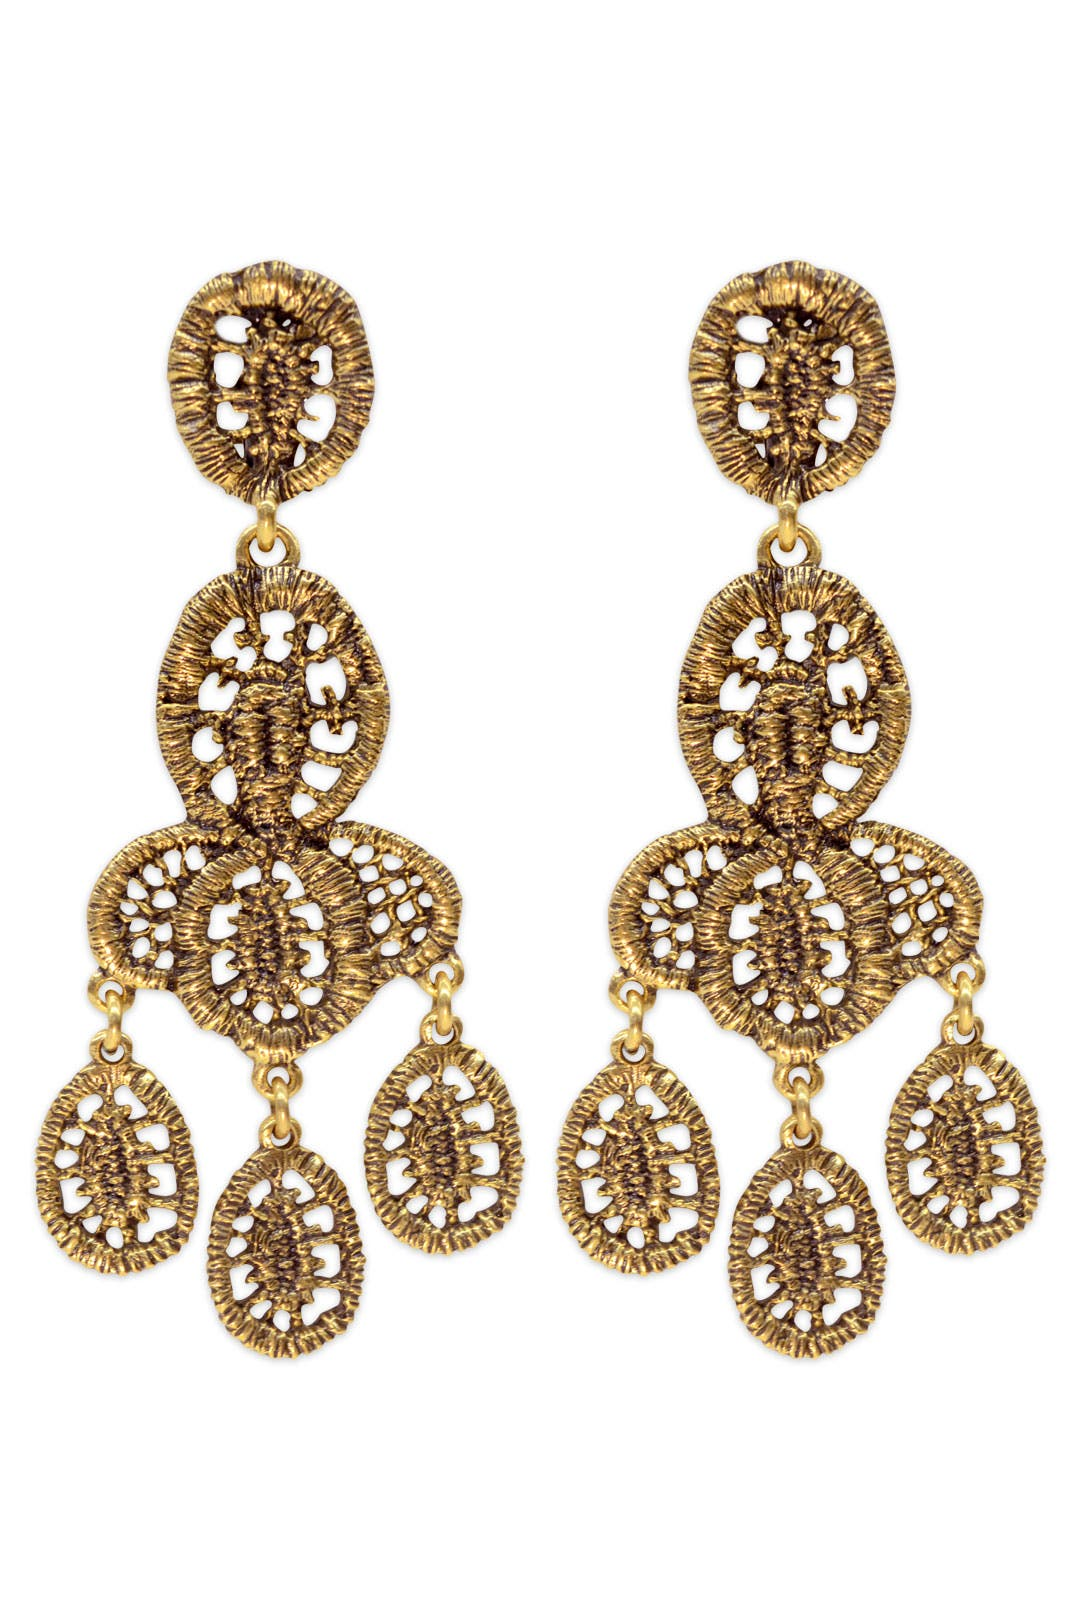 Bandra Earrings by Oscar de la Renta